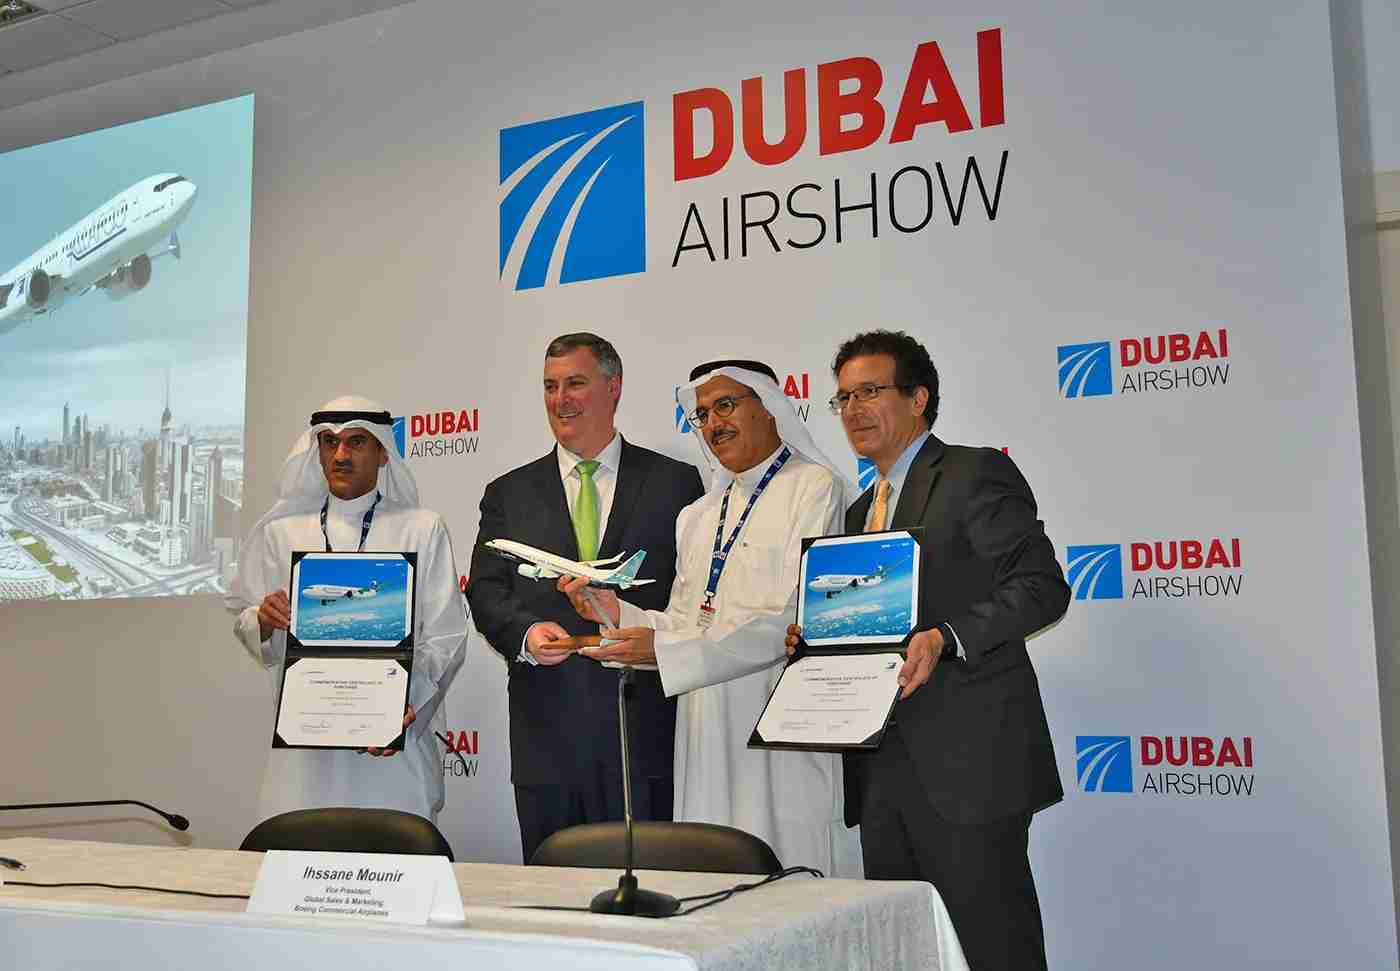 Officials from Boeing and Kuwaiti leasing company Alafco sign a deal for TK Boeing 737MAX jets at the Dubai Air Show in 2017.